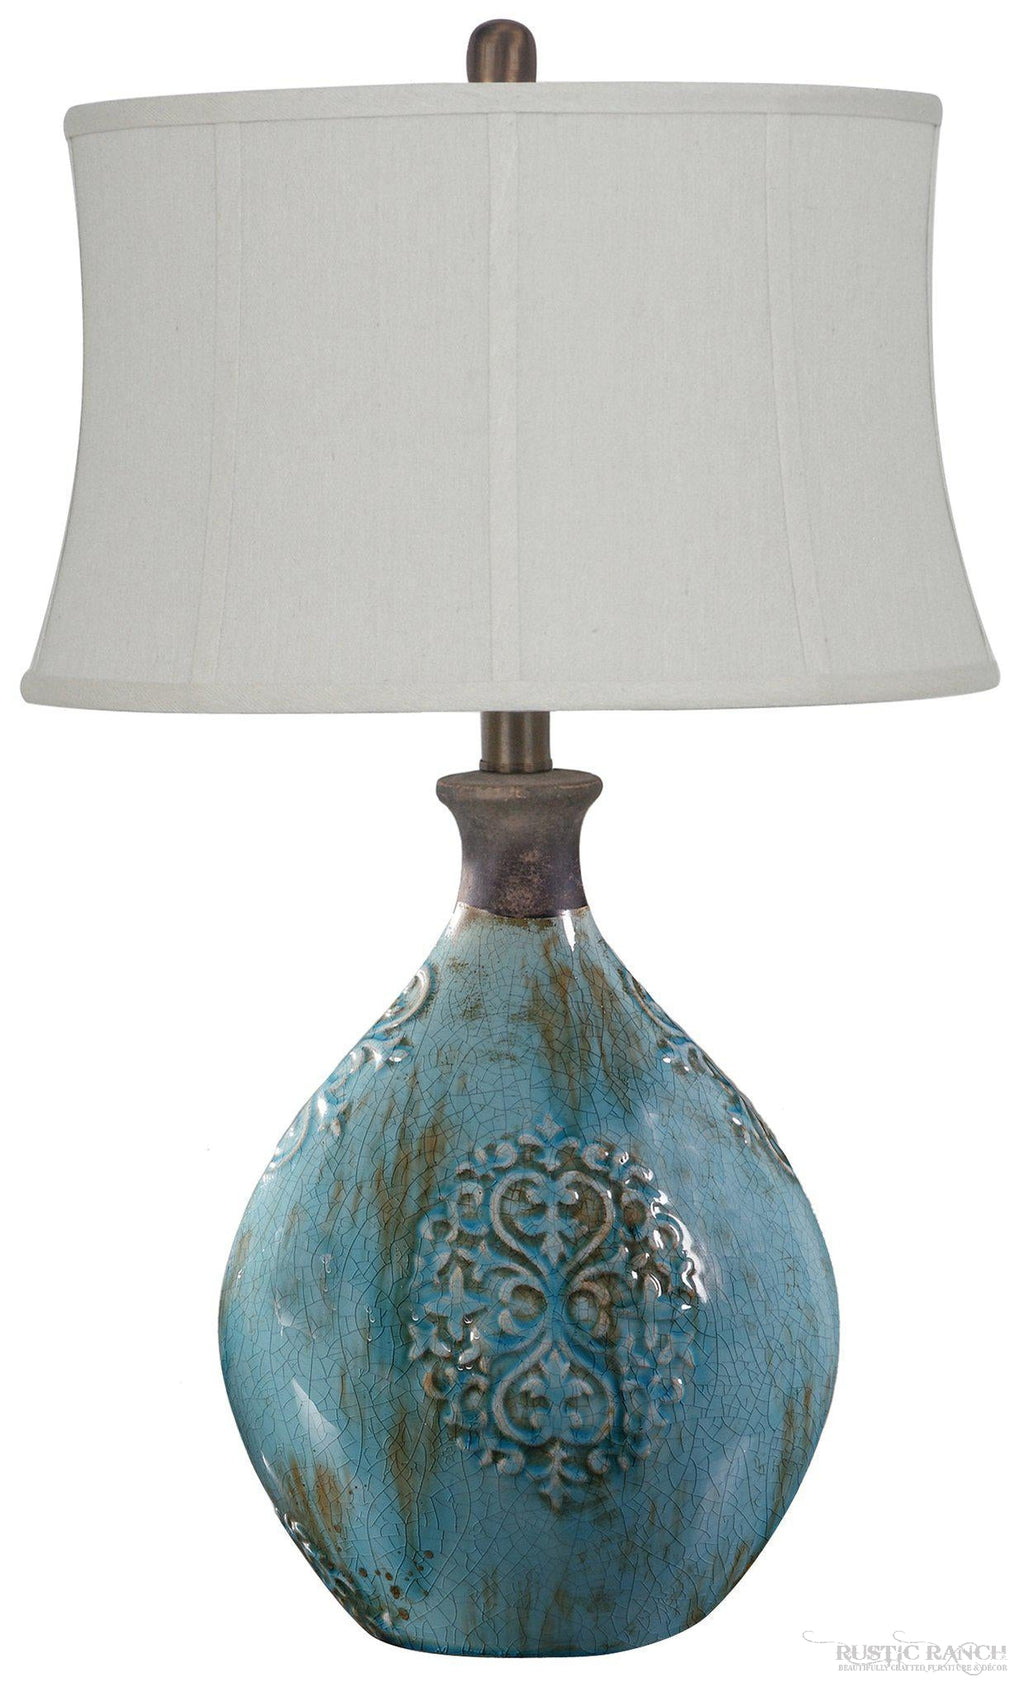 Linnet Table Lamp-Rustic Ranch